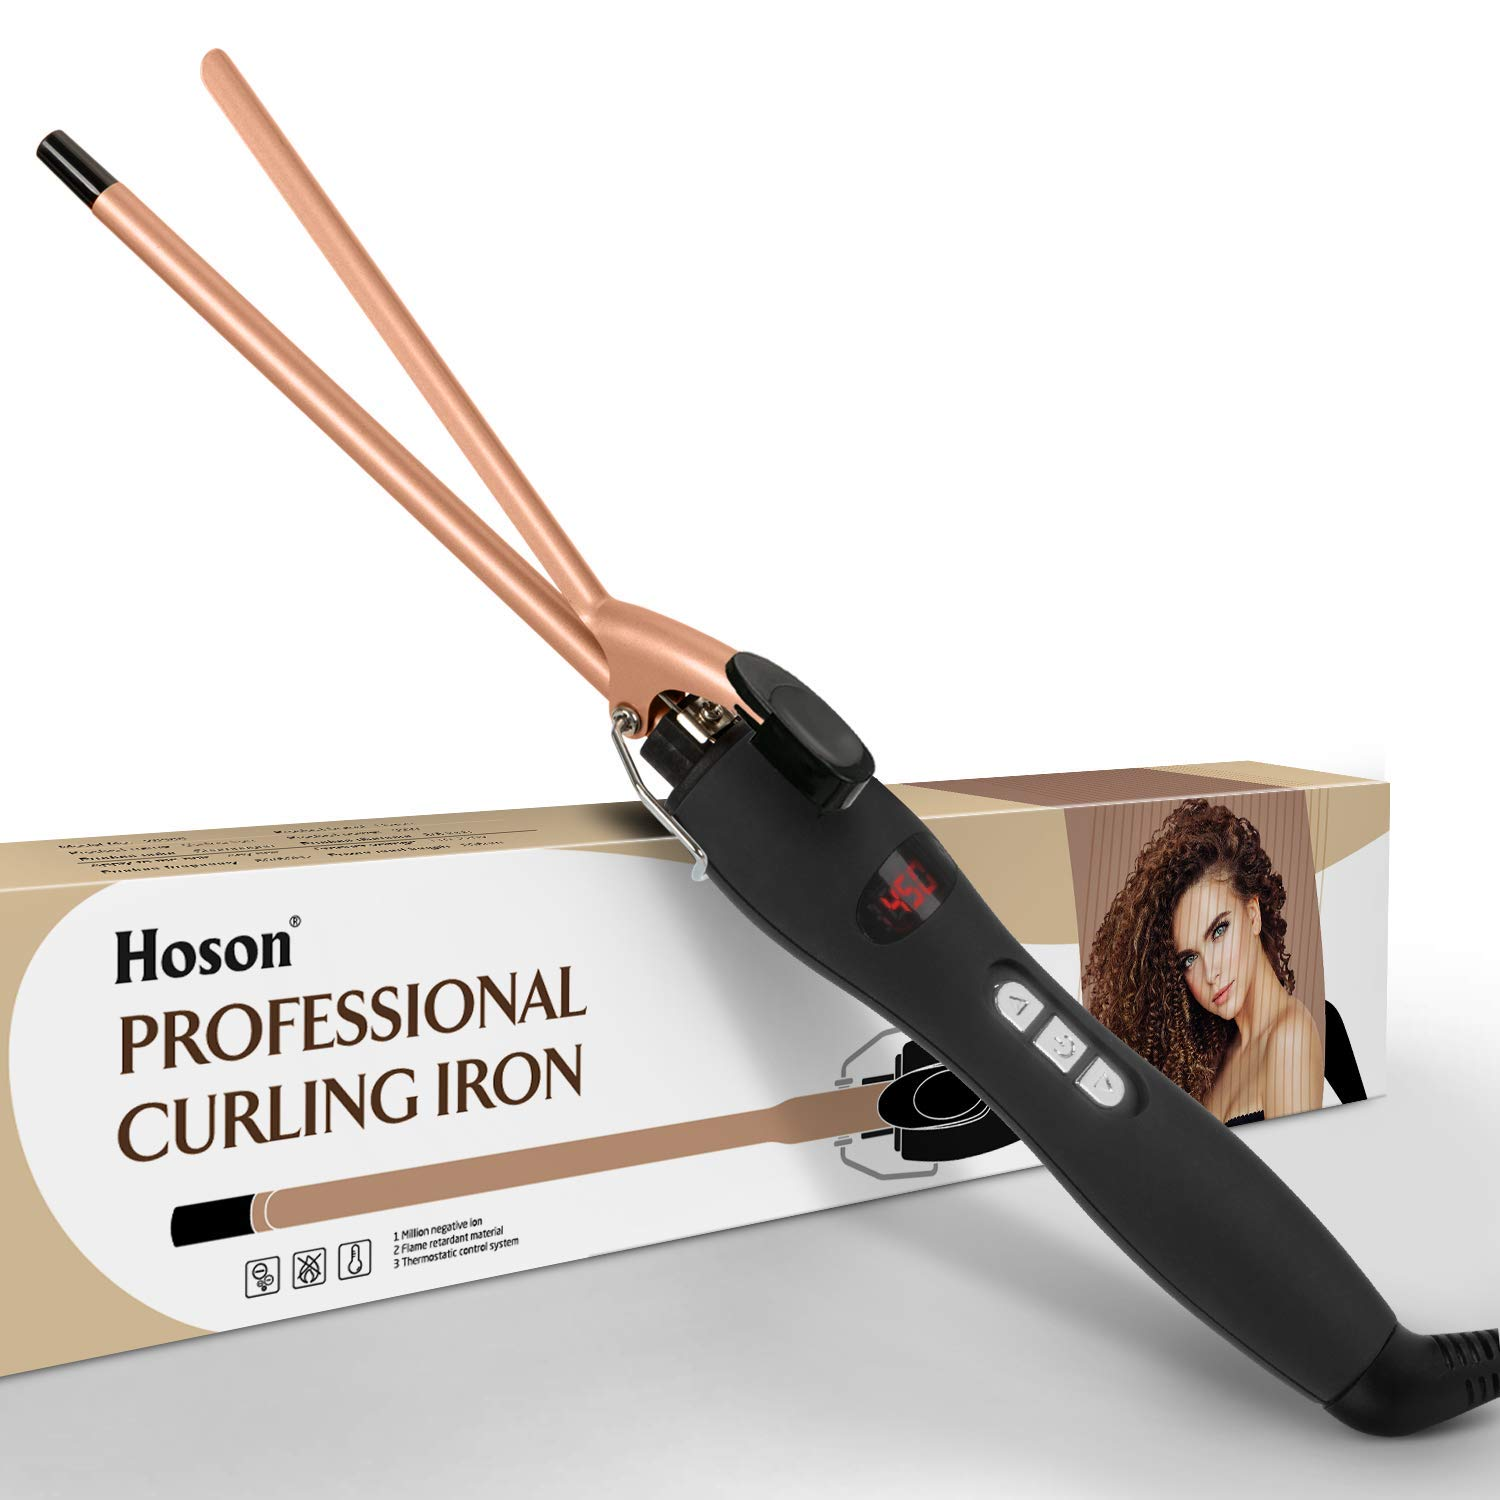 9mm Thin Curling Iron Ceramic, 3/8 Inch Small Barrel Curling Wand for Long & Short Hair, LCD Display with 9 Heat Setting Include Glove(Golden)